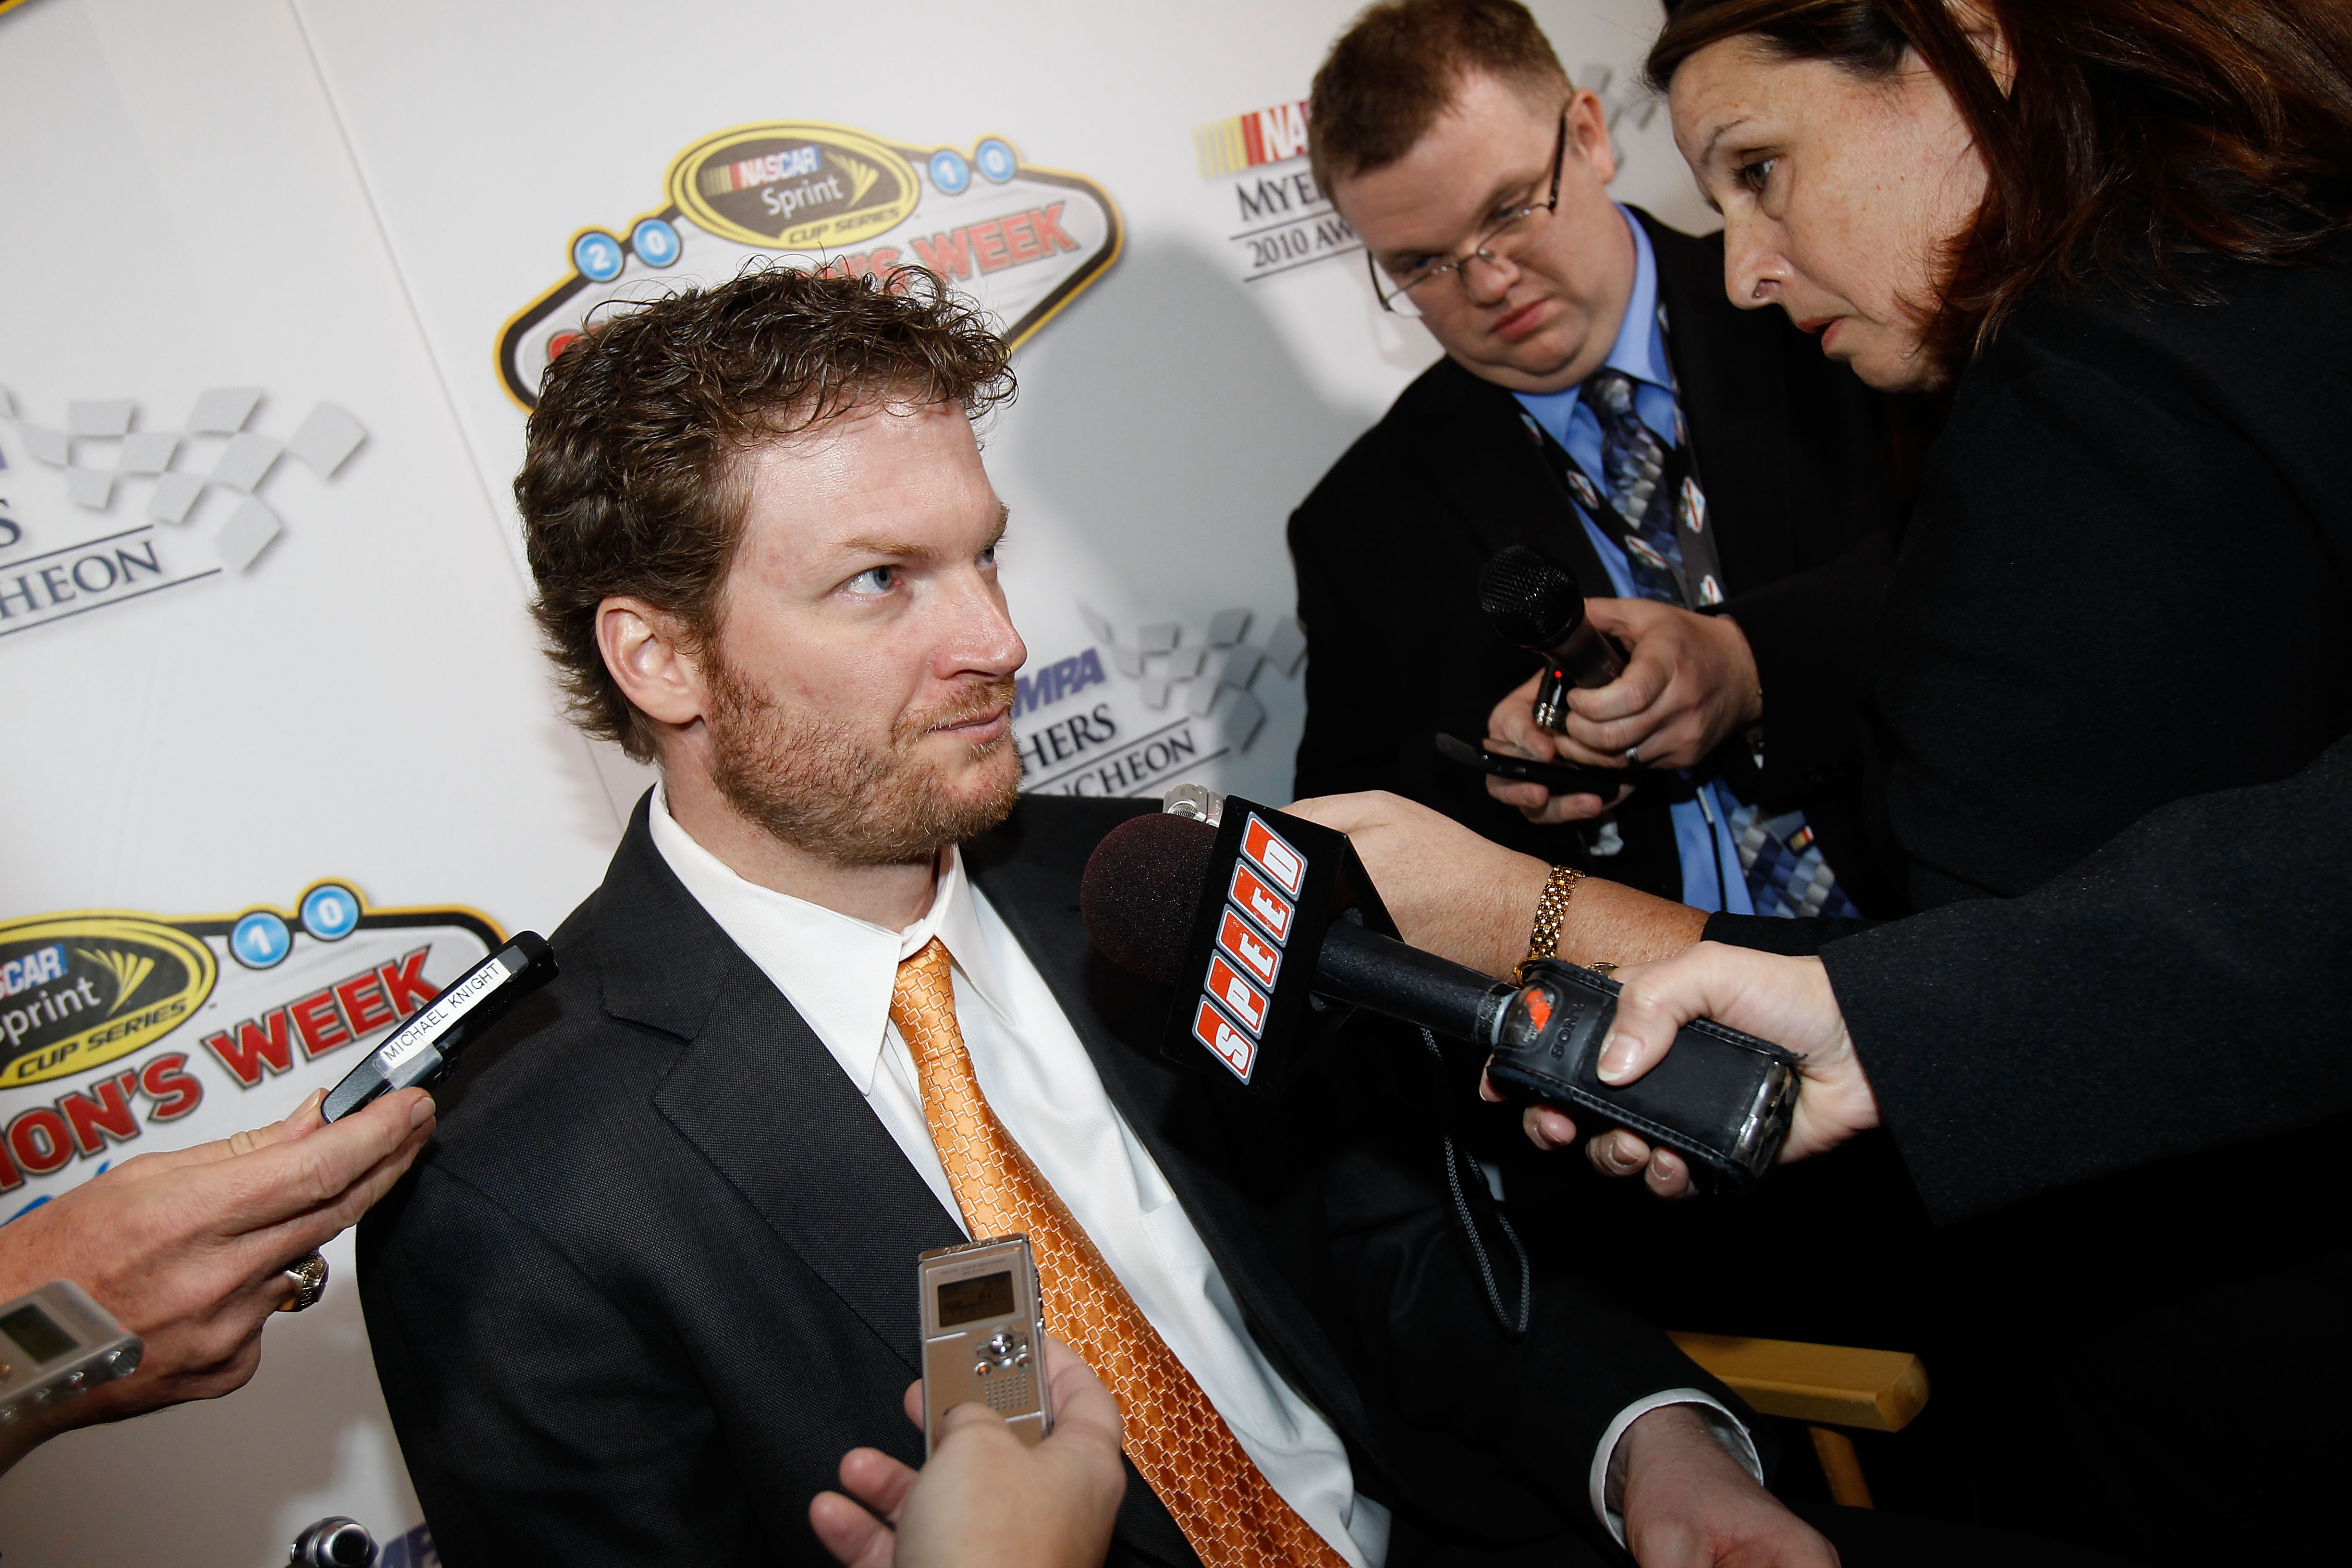 Dale Earnhardt Jr won his eighth consecutive most popular driver award.